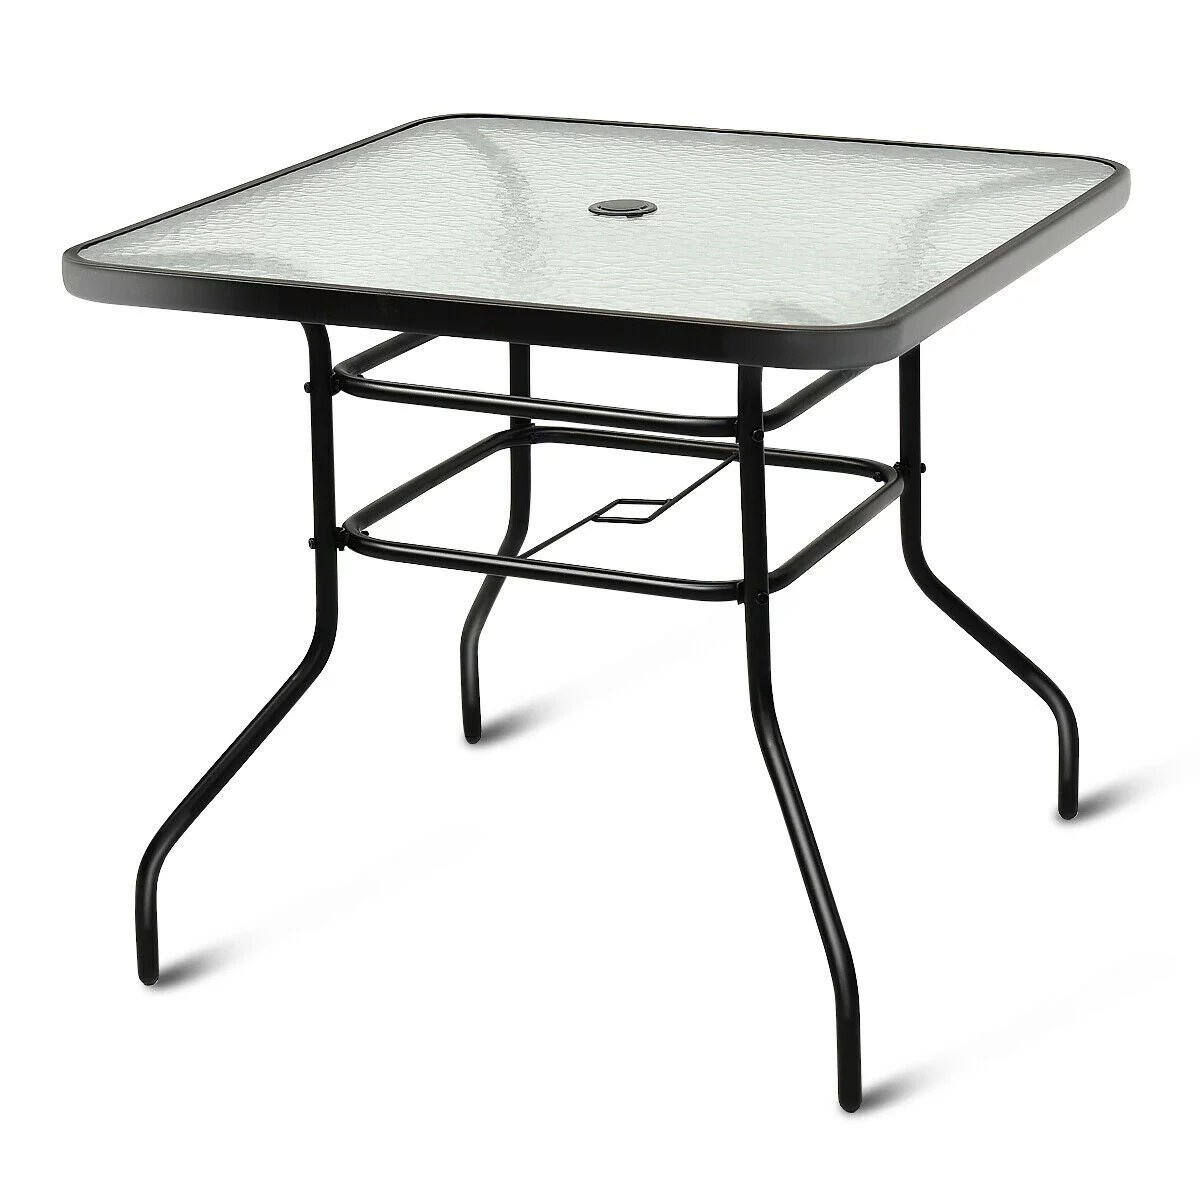 costway 32 patio square table tempered glass steel frame outdoor pool yard garden